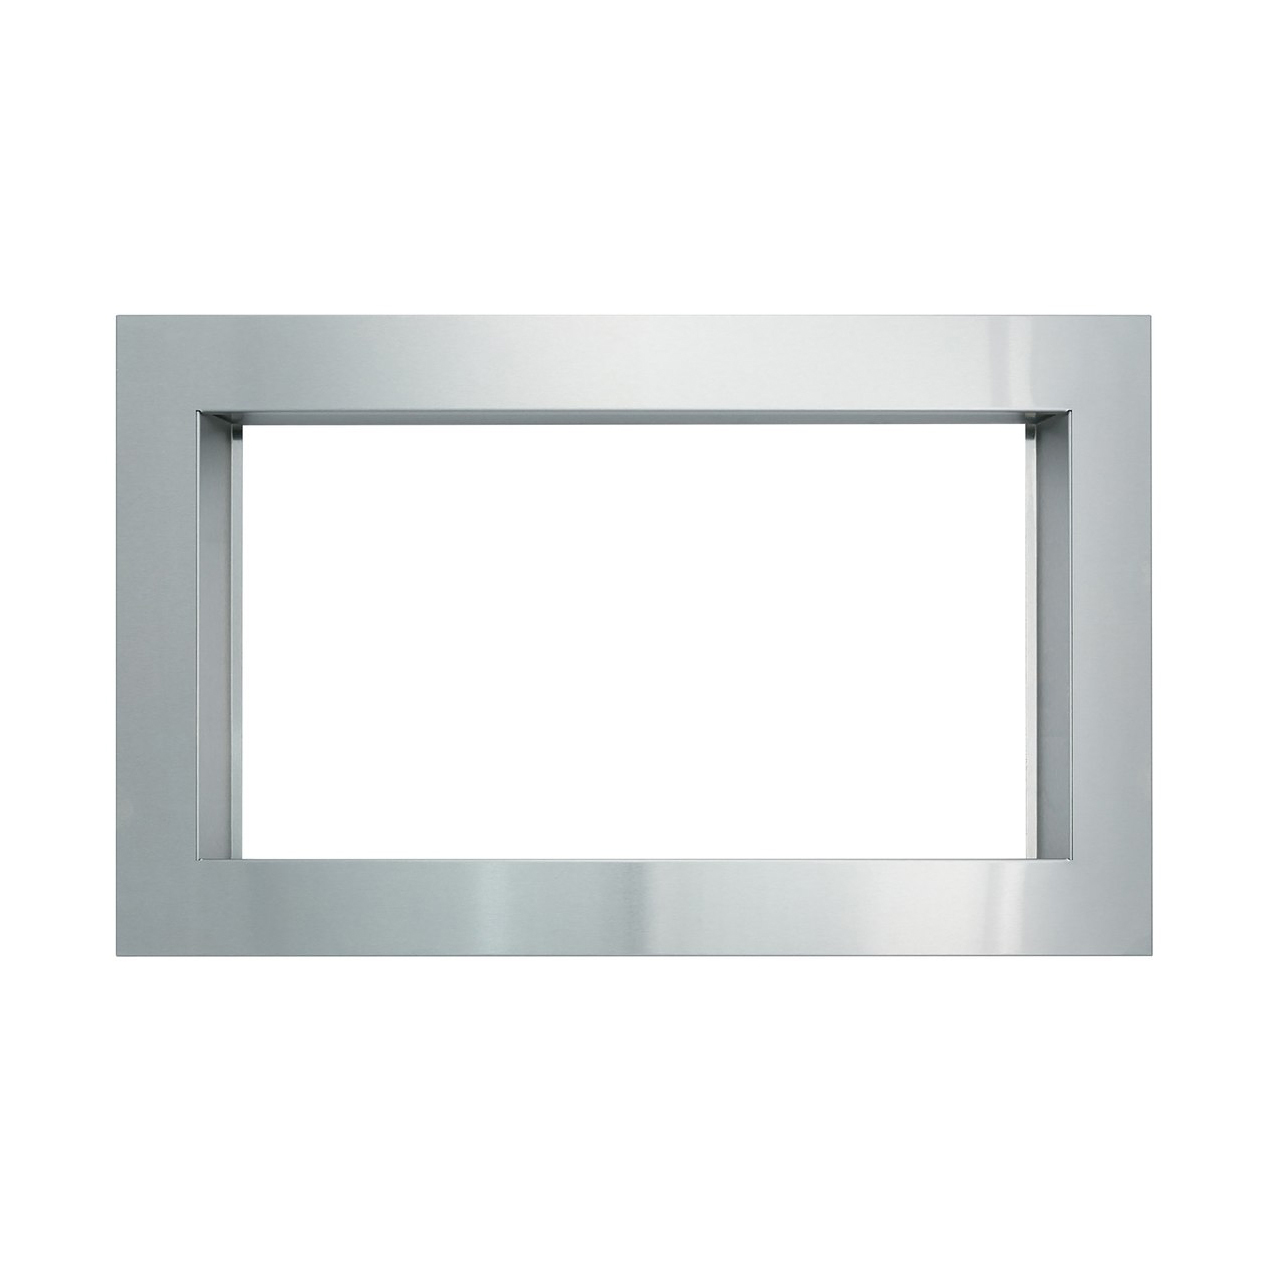 "Sharp 30"" Built-in Trim Kit (RK49S30)"